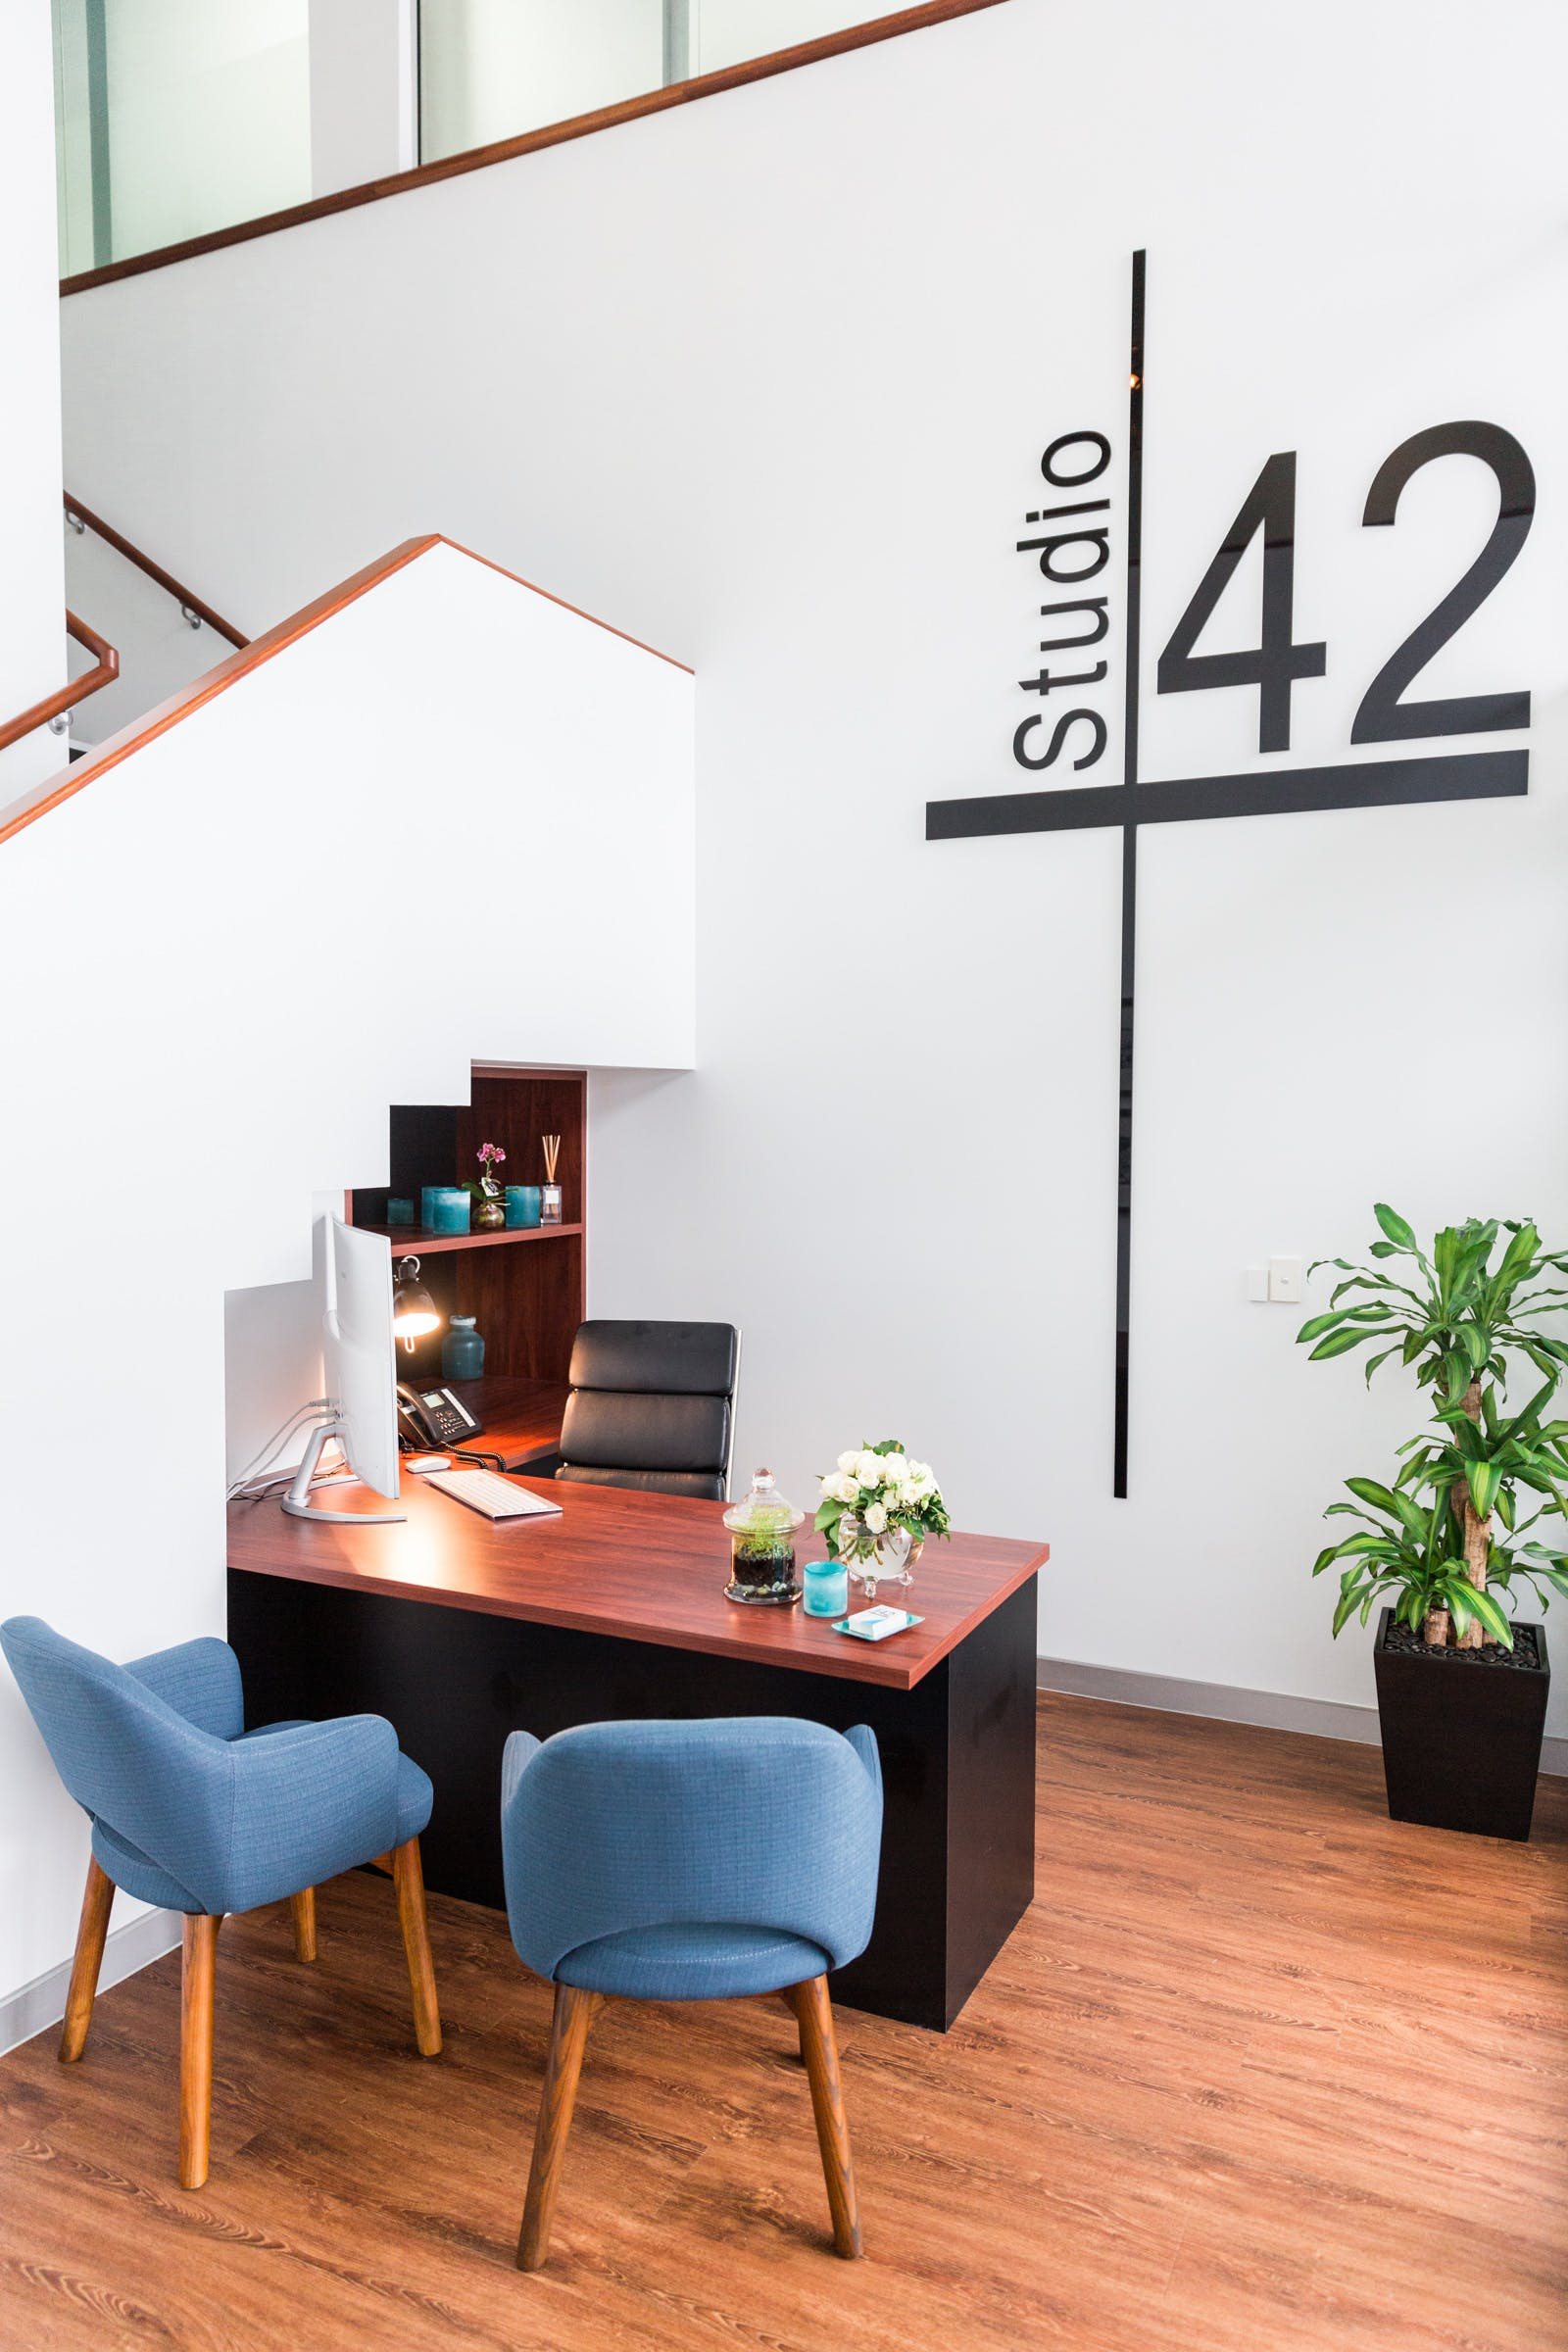 Northcote Office, private office at Studio 42 Workspaces, image 1